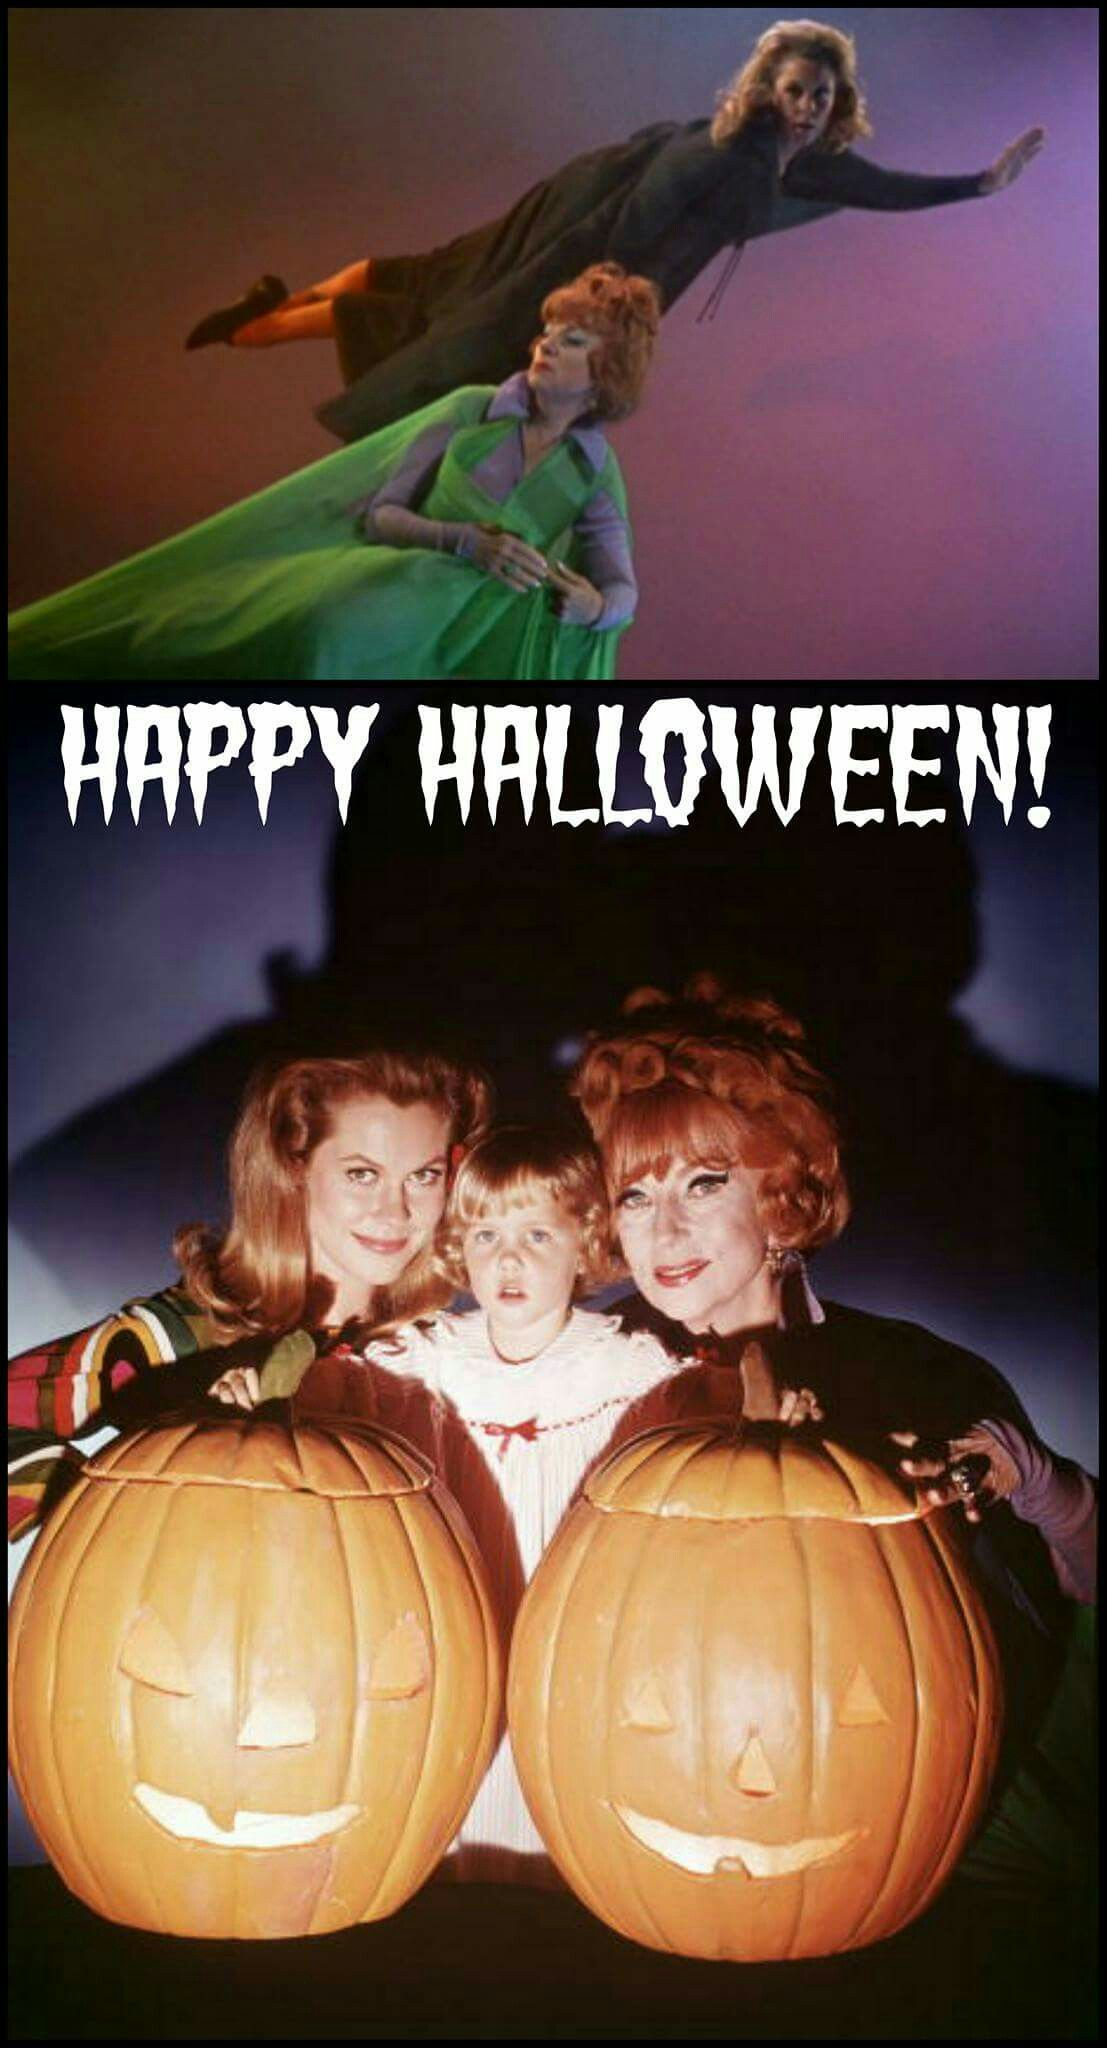 From Samantha, Endora and Tabitha to you! Happy